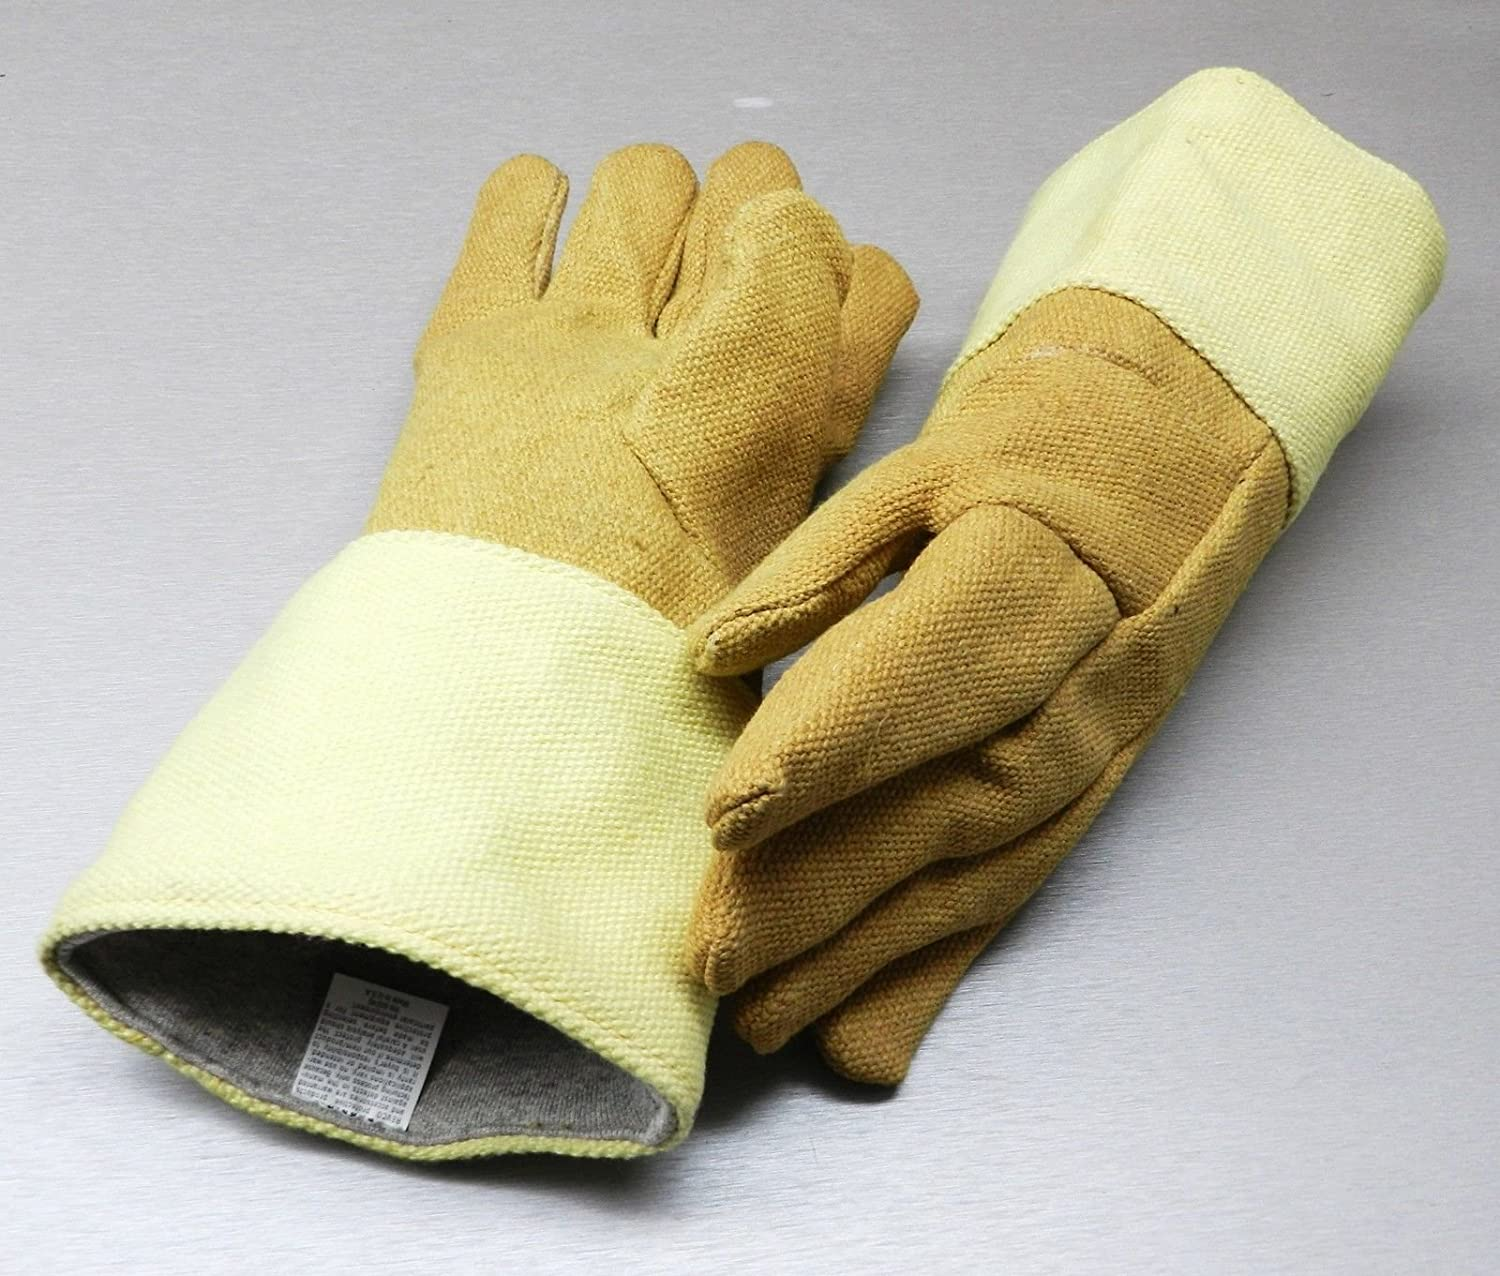 GLOVES HIGH TEMPERATURE GLOVE HEAT RESISTANT KEVLAR - PBI 14 PAIR Rated 1400F (LZ 1.1 FRE) NOVELTOOLS